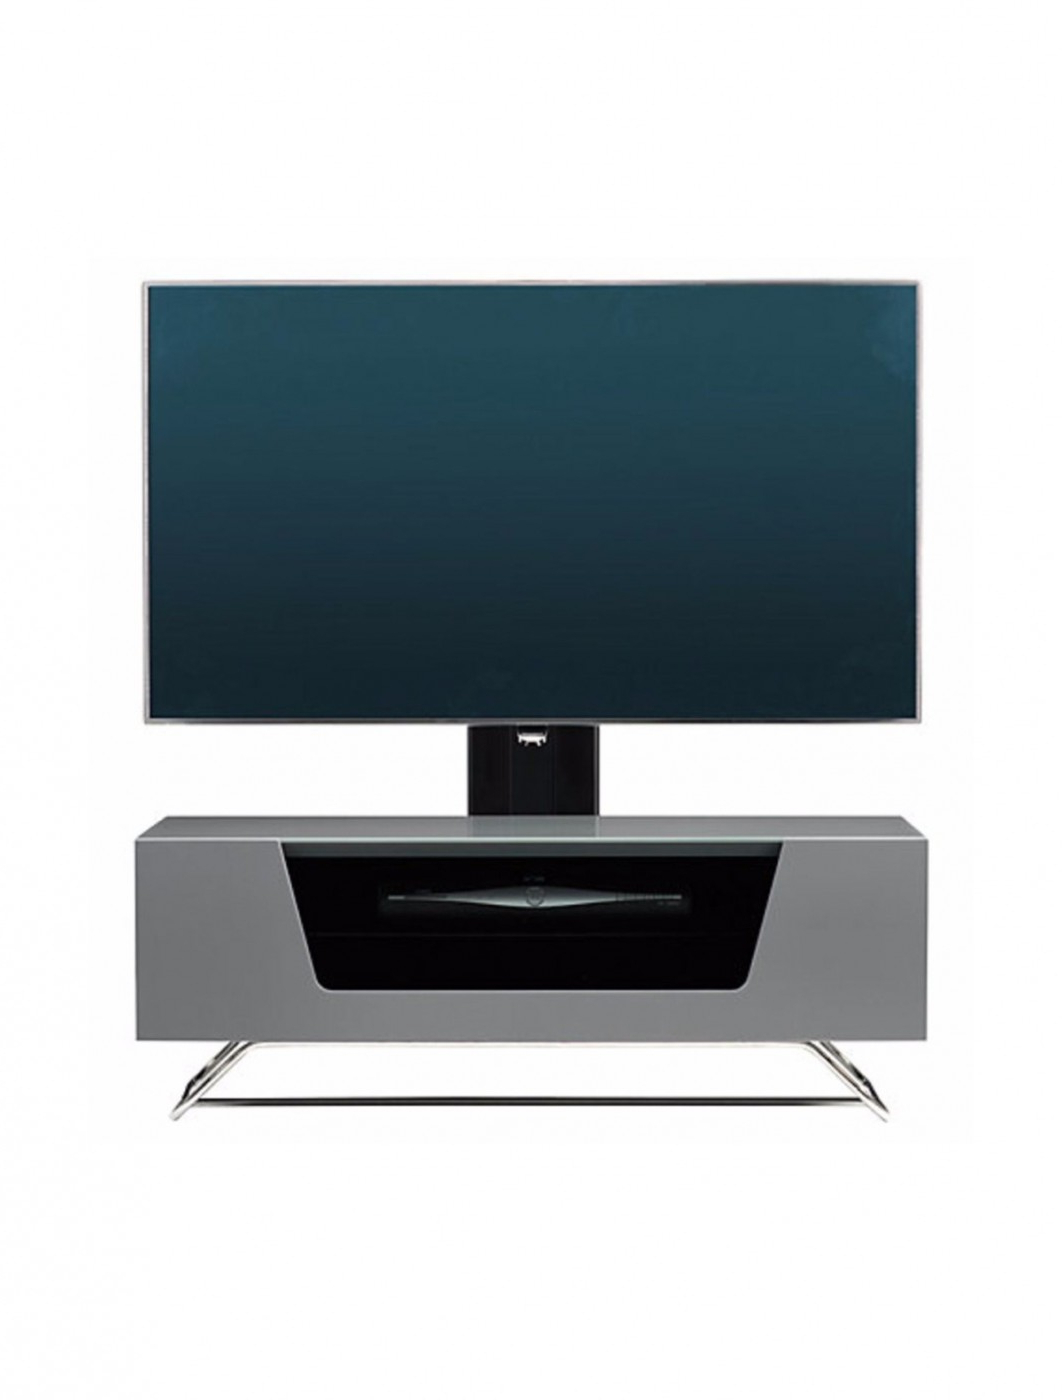 Most Popular Alphason Chromium Cantilever Tv Stand Cro2 1200bkt Gr Intended For Chromium Tv Stands (View 10 of 25)